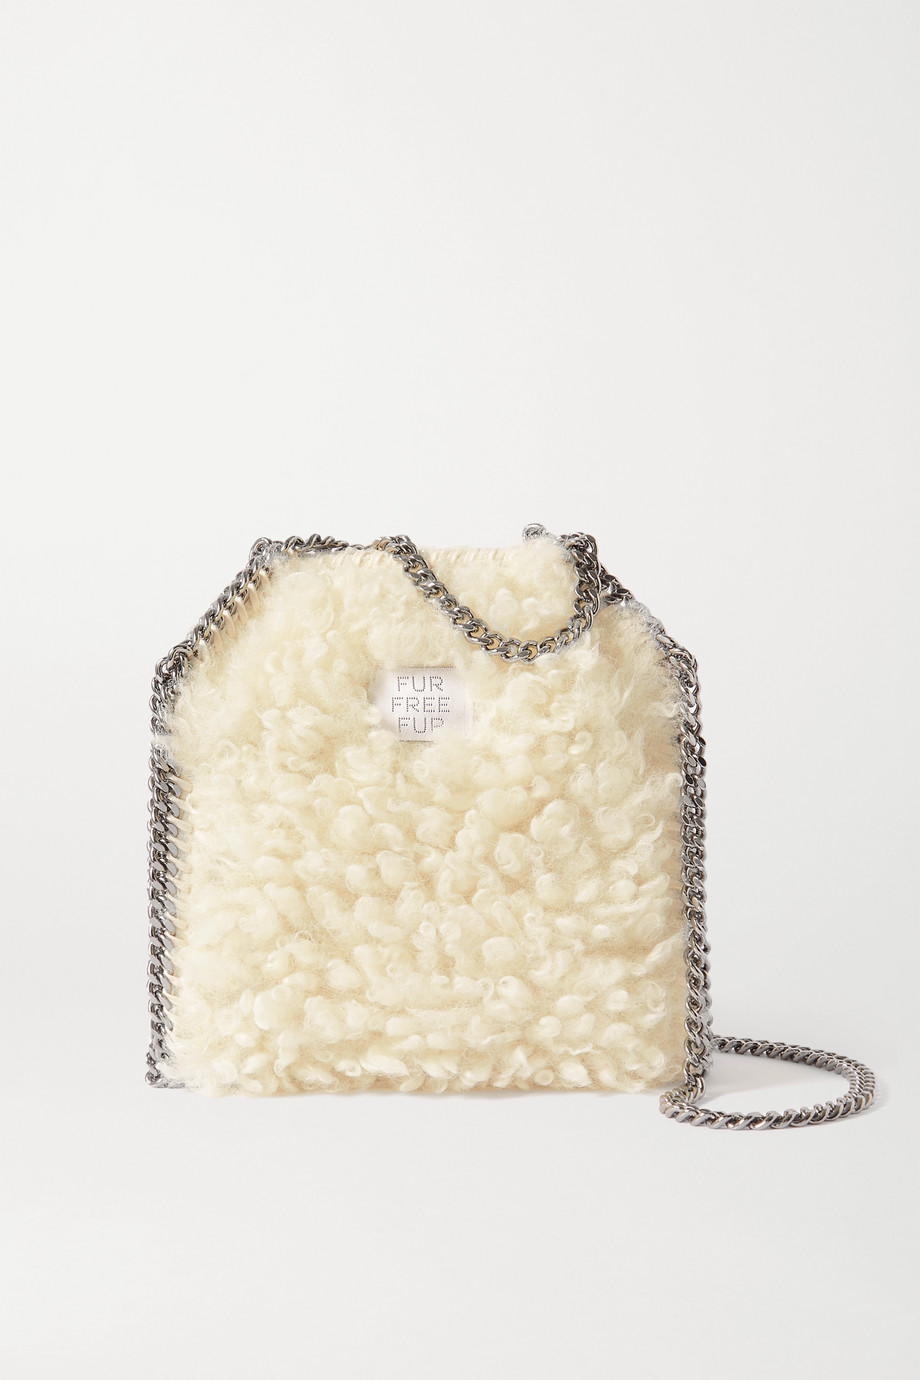 Stella McCartney The Falabella tiny faux shearling tote